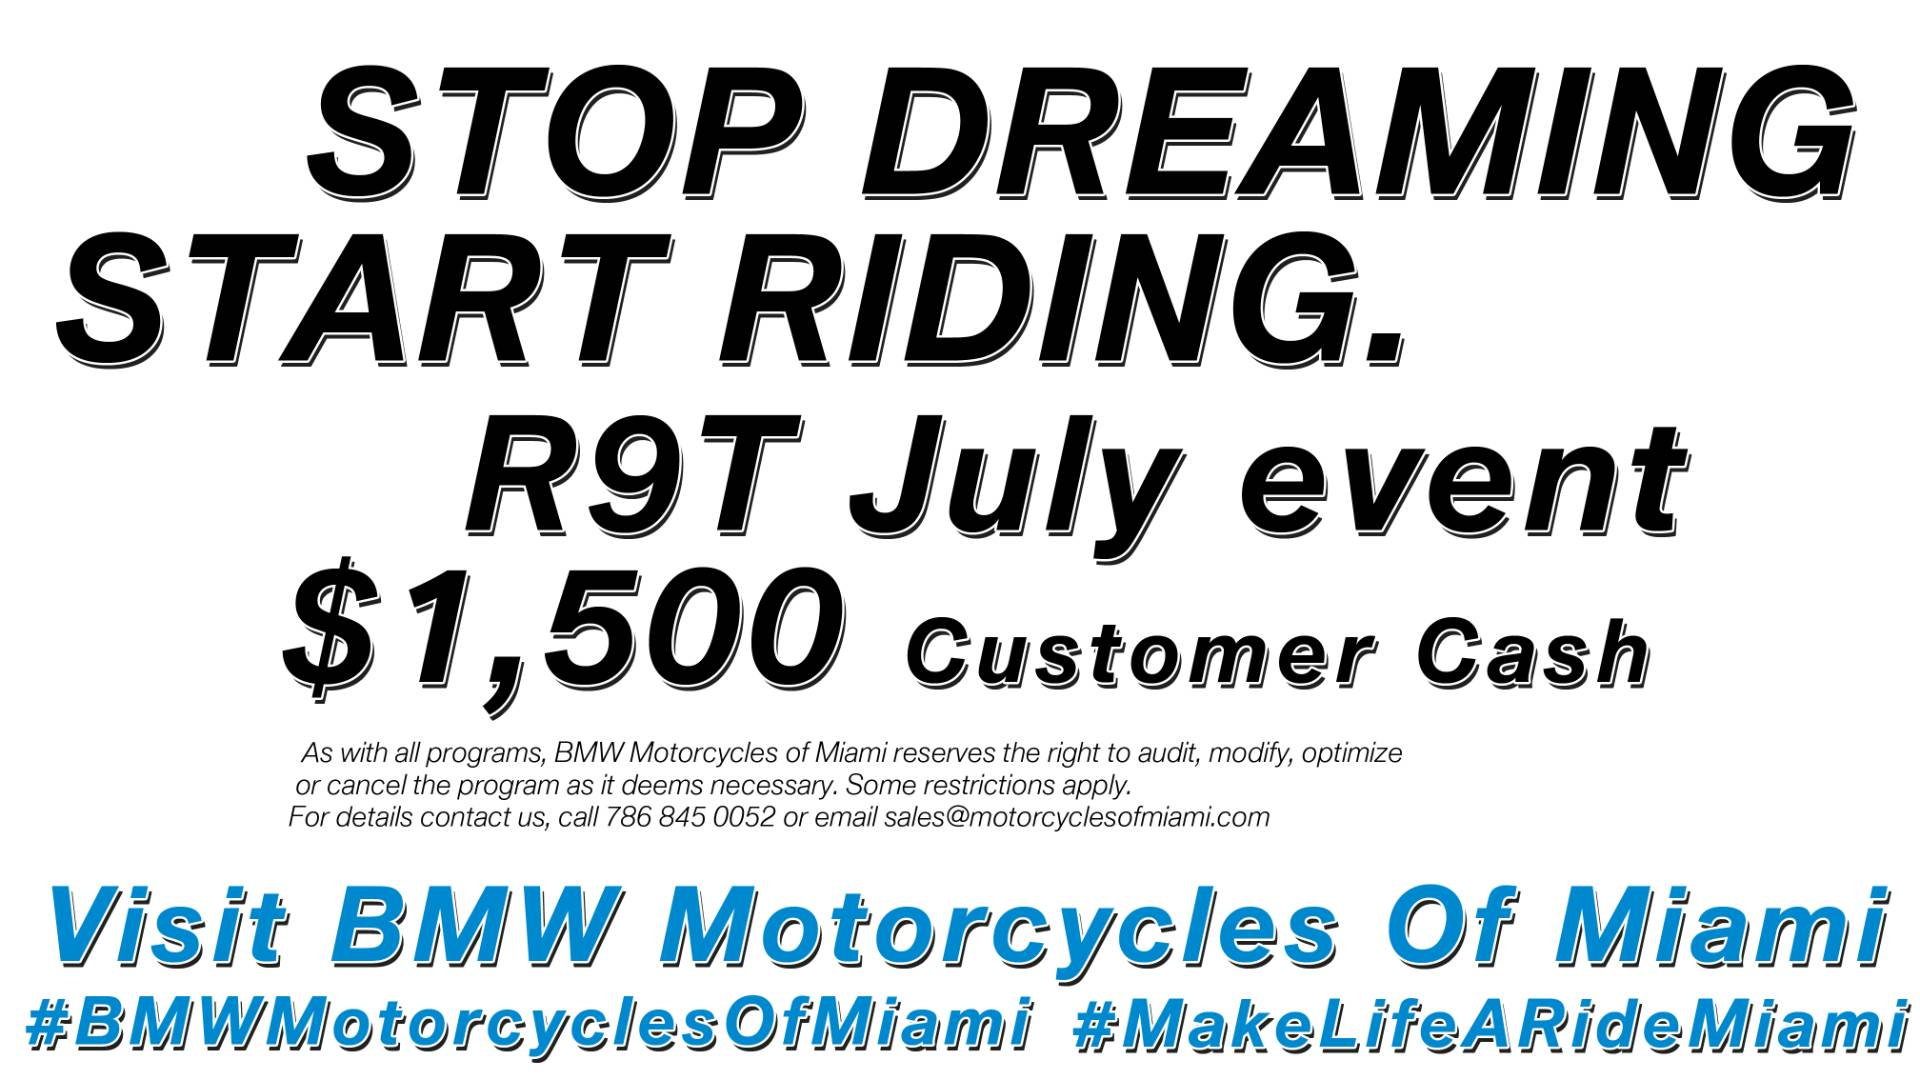 New 2019 BMW R nine T for sale, BMW R nineT for sale, BMW Motorcycle RnineT, BMW Motorcycles of Miami, Motorcycles of Miami, Motorcycles Miami - Photo 2